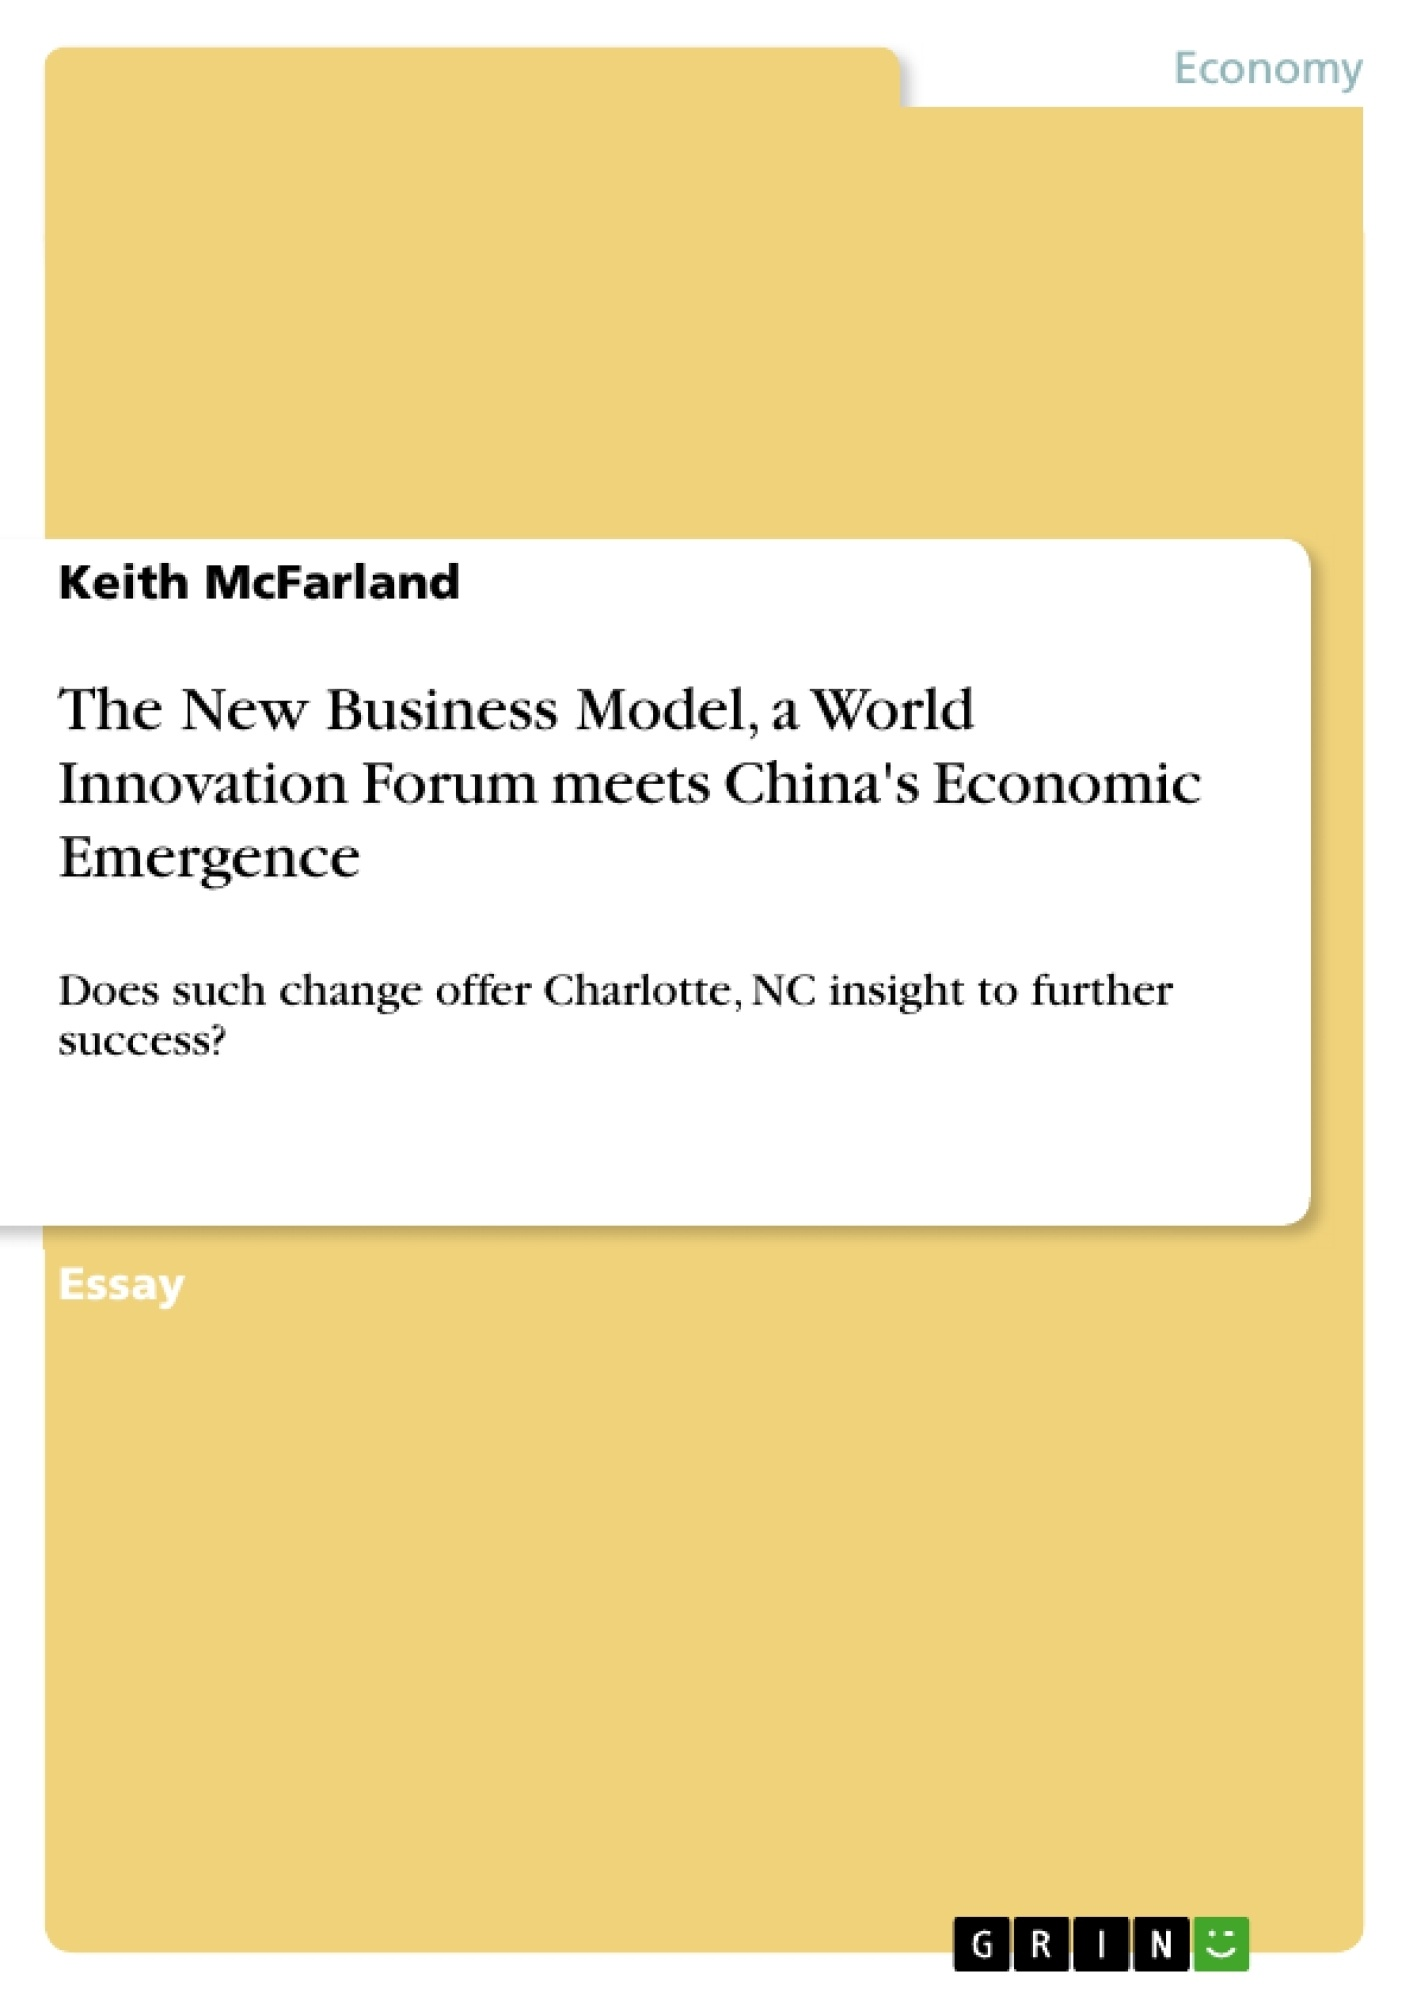 Title: The New Business Model, a World Innovation Forum meets China's Economic Emergence